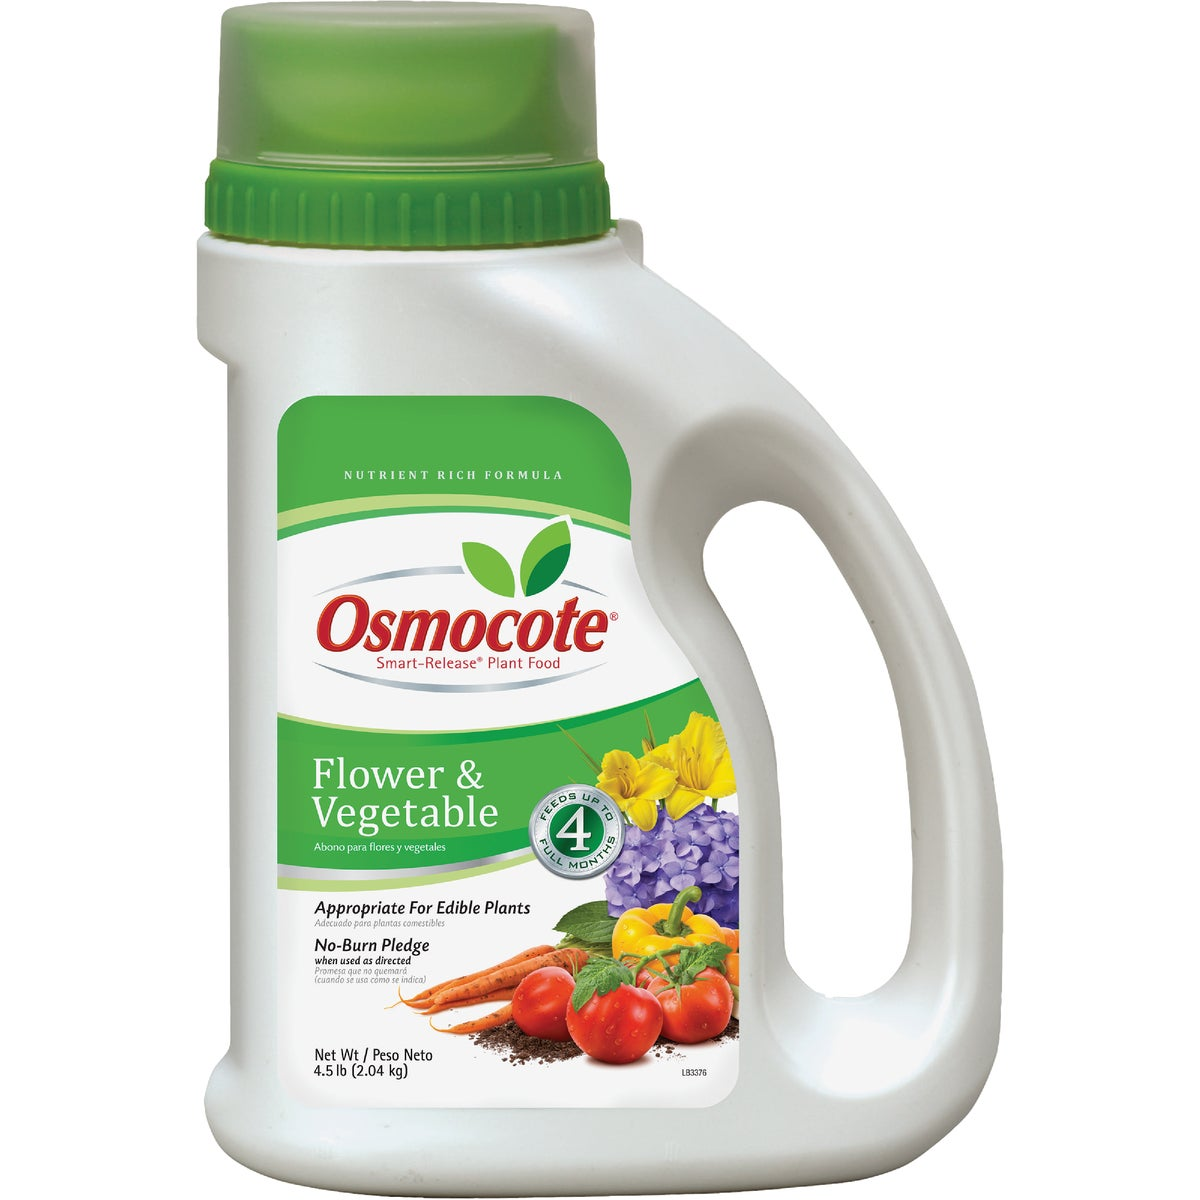 4.5LB OSMOCOTE FLOWR&VEG - 277860 by Scotts Company